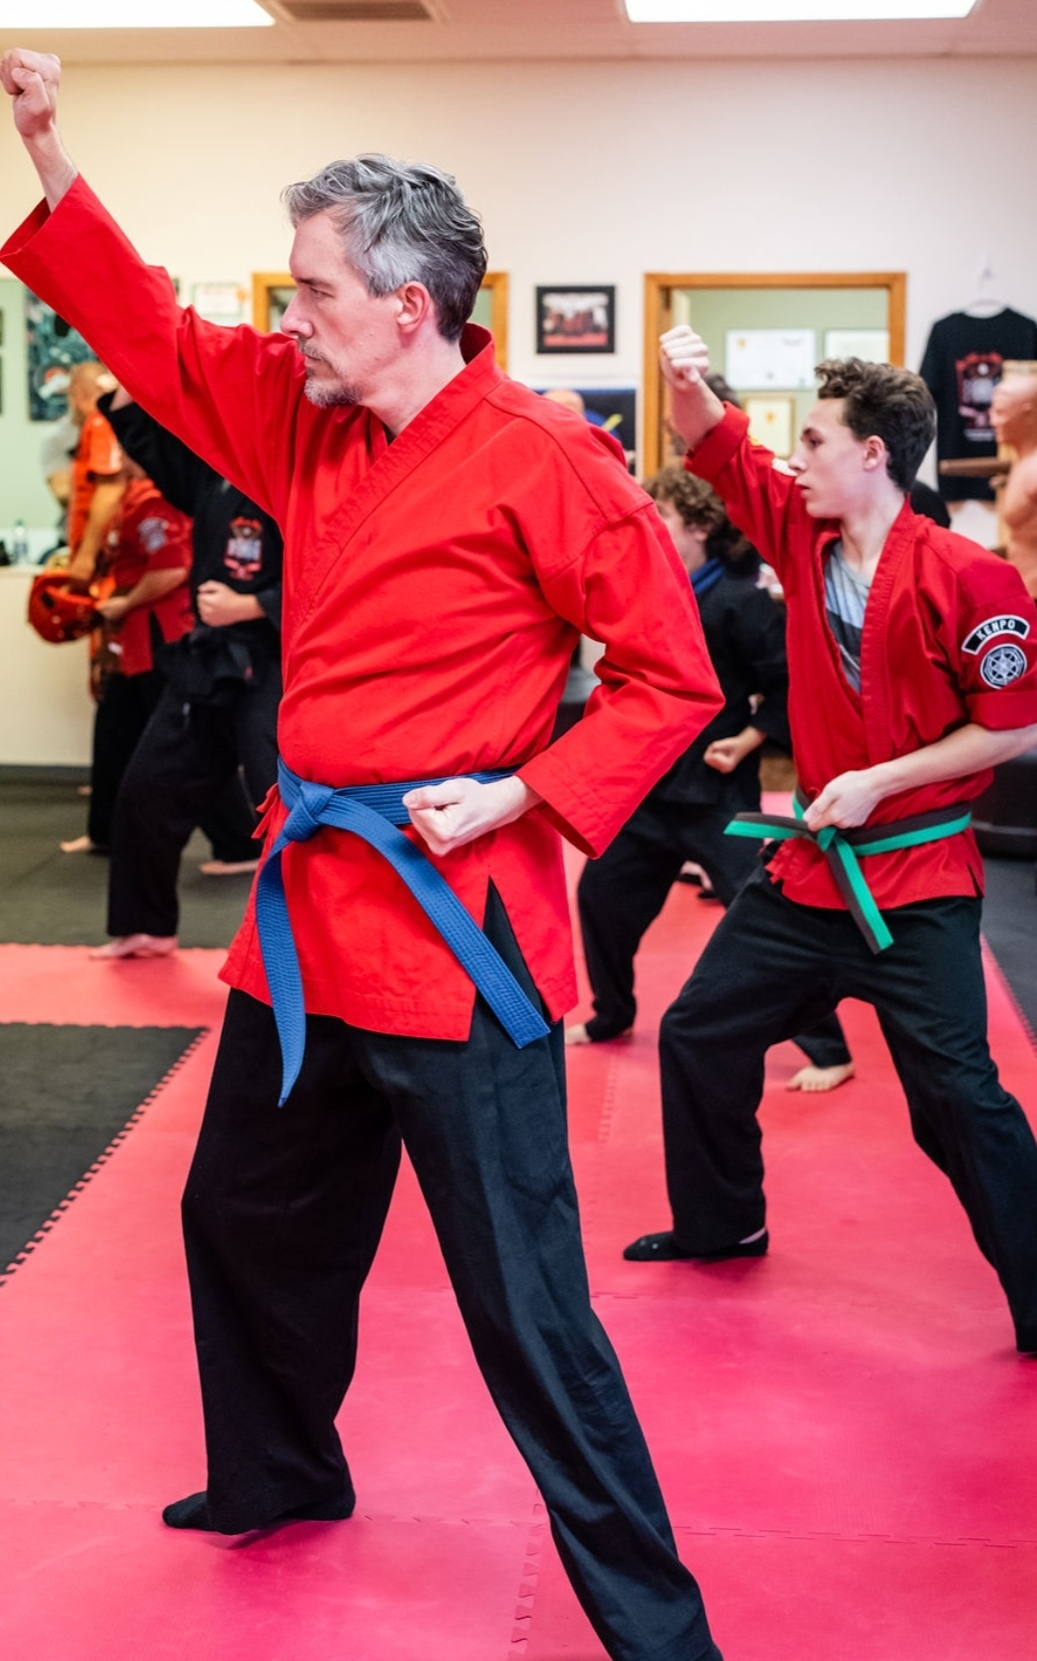 Schedule a Free Martial Arts Lesson in Tonawanda, NY